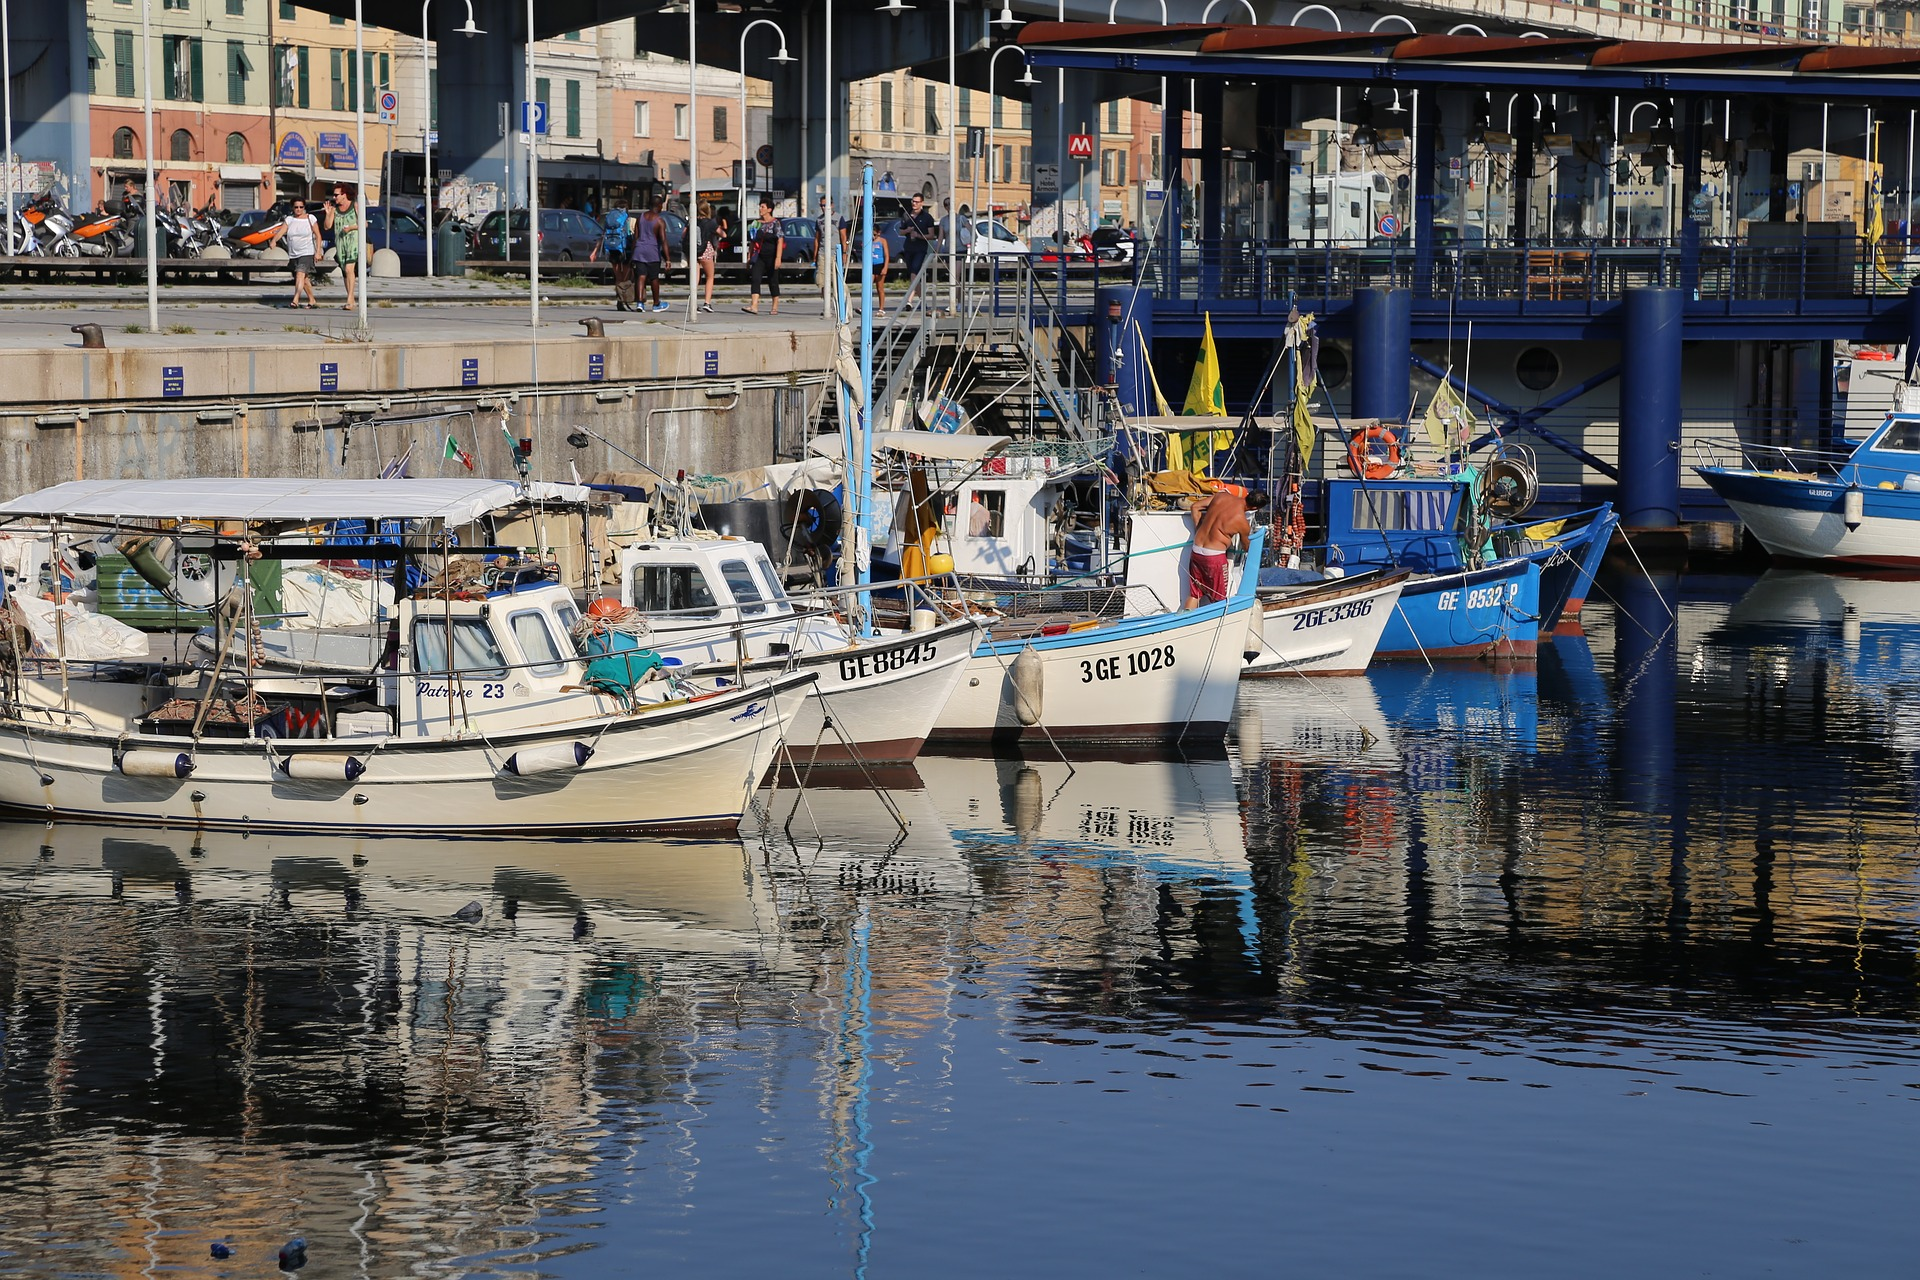 Port and boats in Genoa